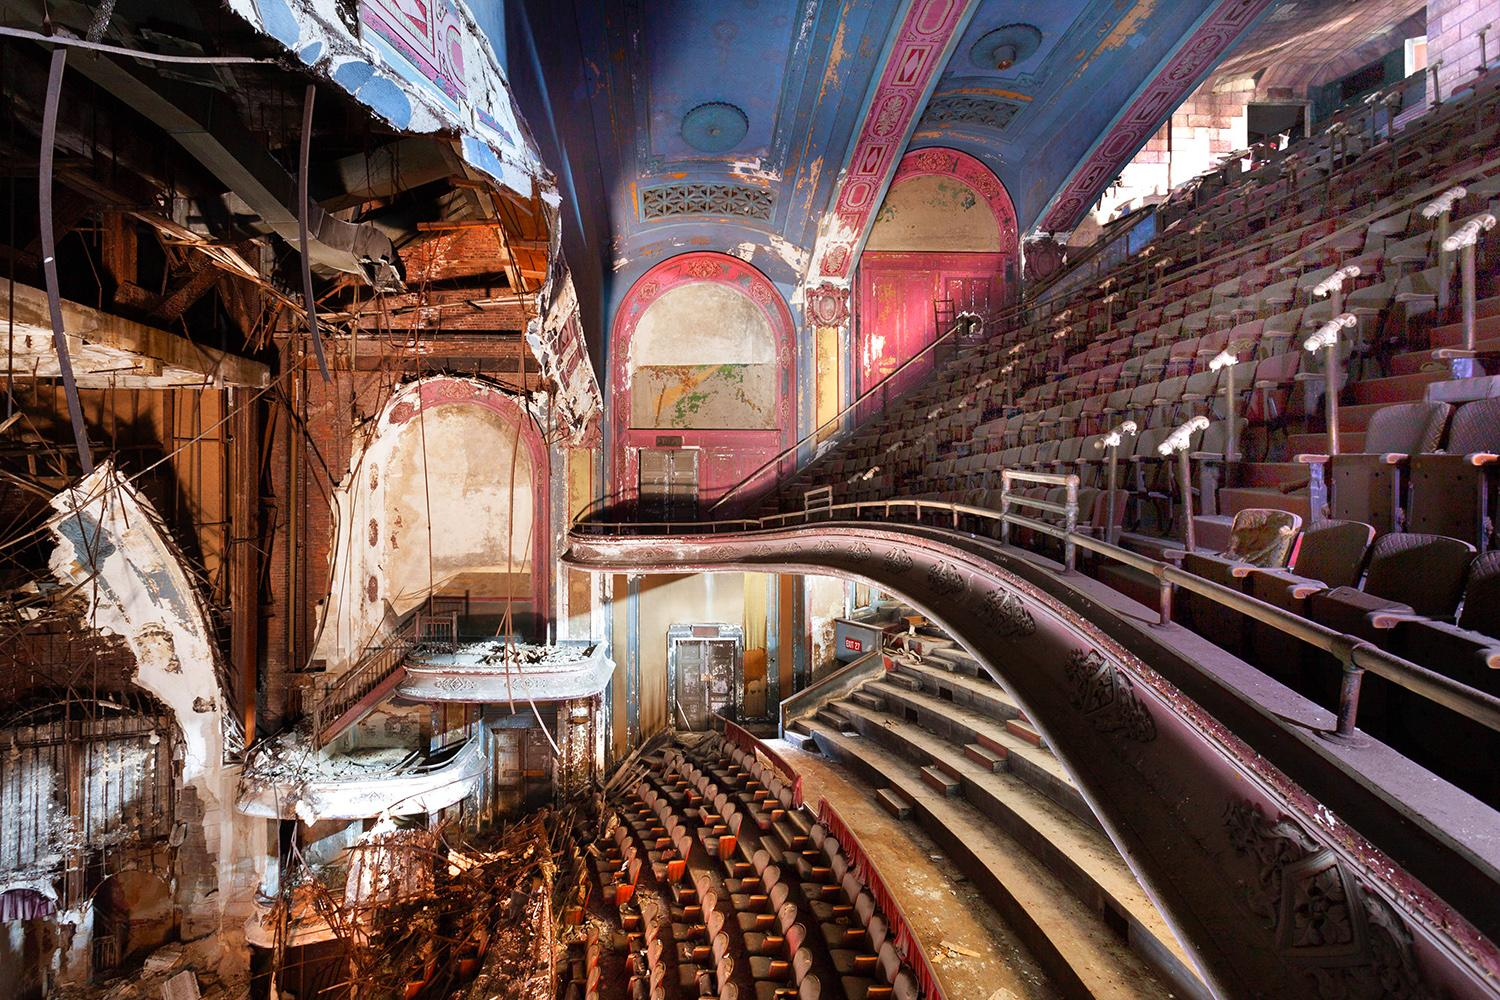 <p>A photographer with a passion for decaying buildings has captured a hauntingly beautiful series of images of theaters across the U.S. crumbling after the final curtain has fallen. (Photo: Matt Lambros/Caters News) </p>